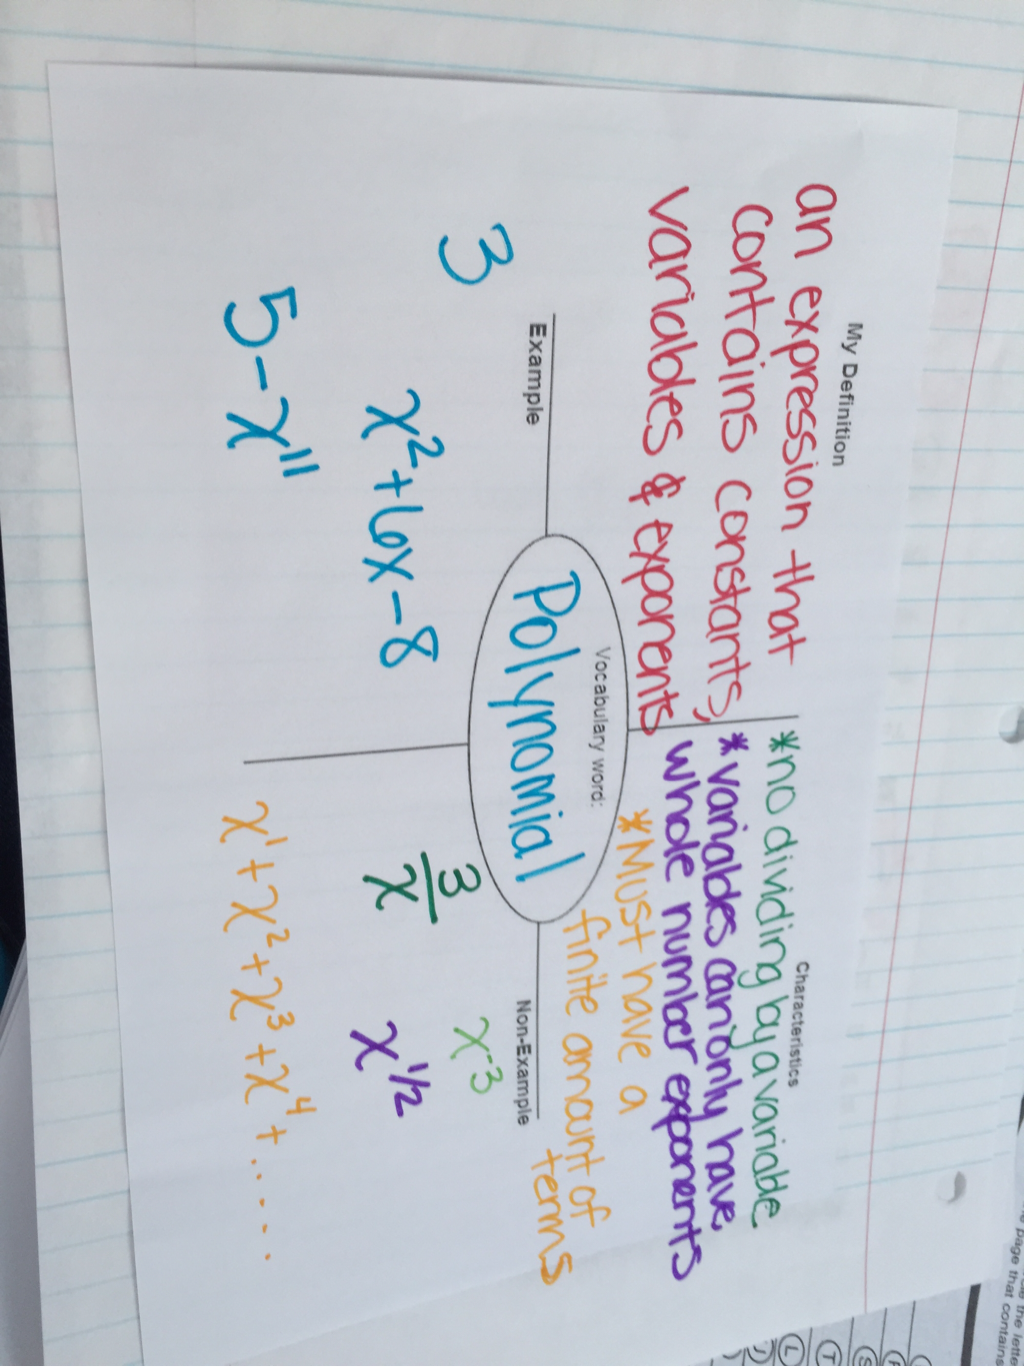 Pin By Amber Land Snell On Algebra 1 Polynomials G Words Math About Me Polynomials [ 1367 x 1024 Pixel ]